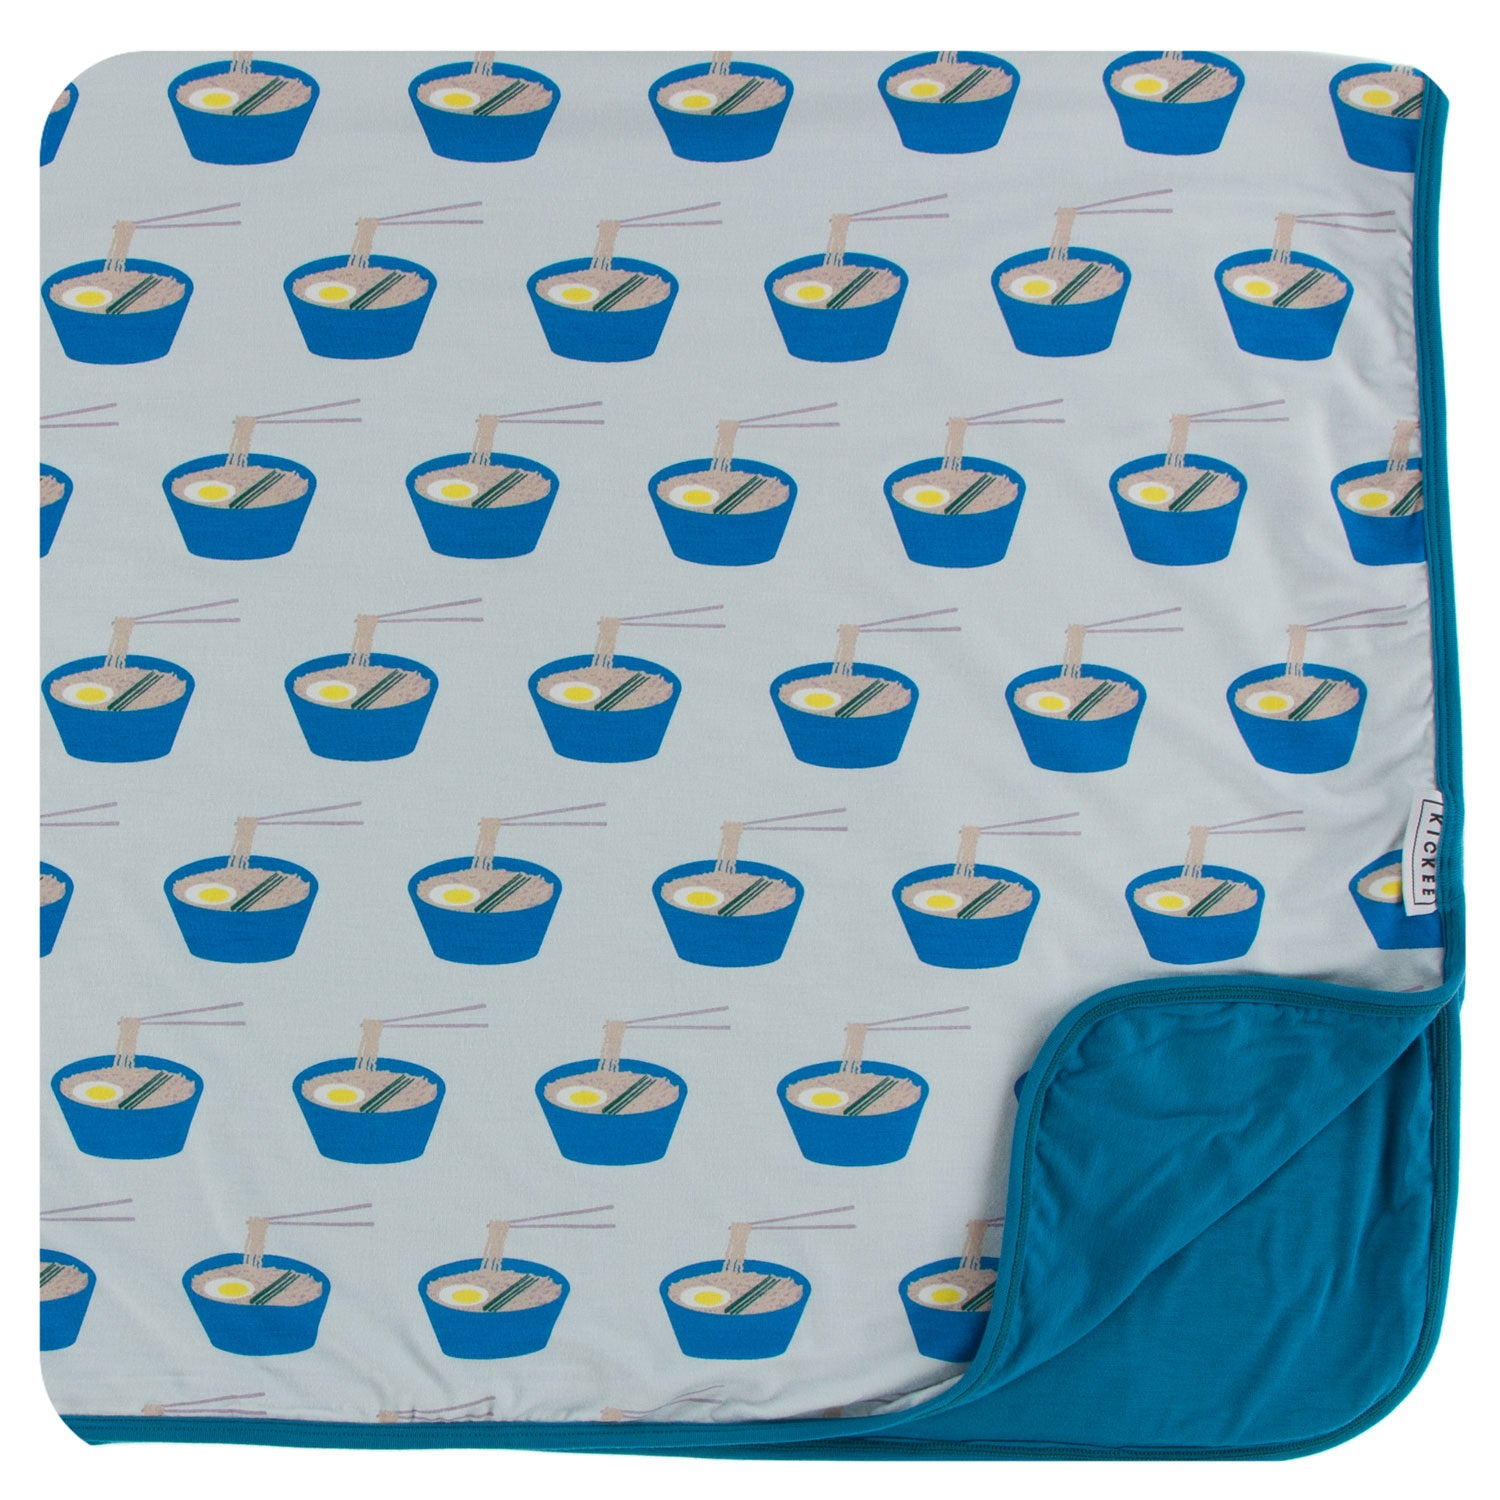 KicKee Pants Toddler Blanket - Illusion Blue Ramen